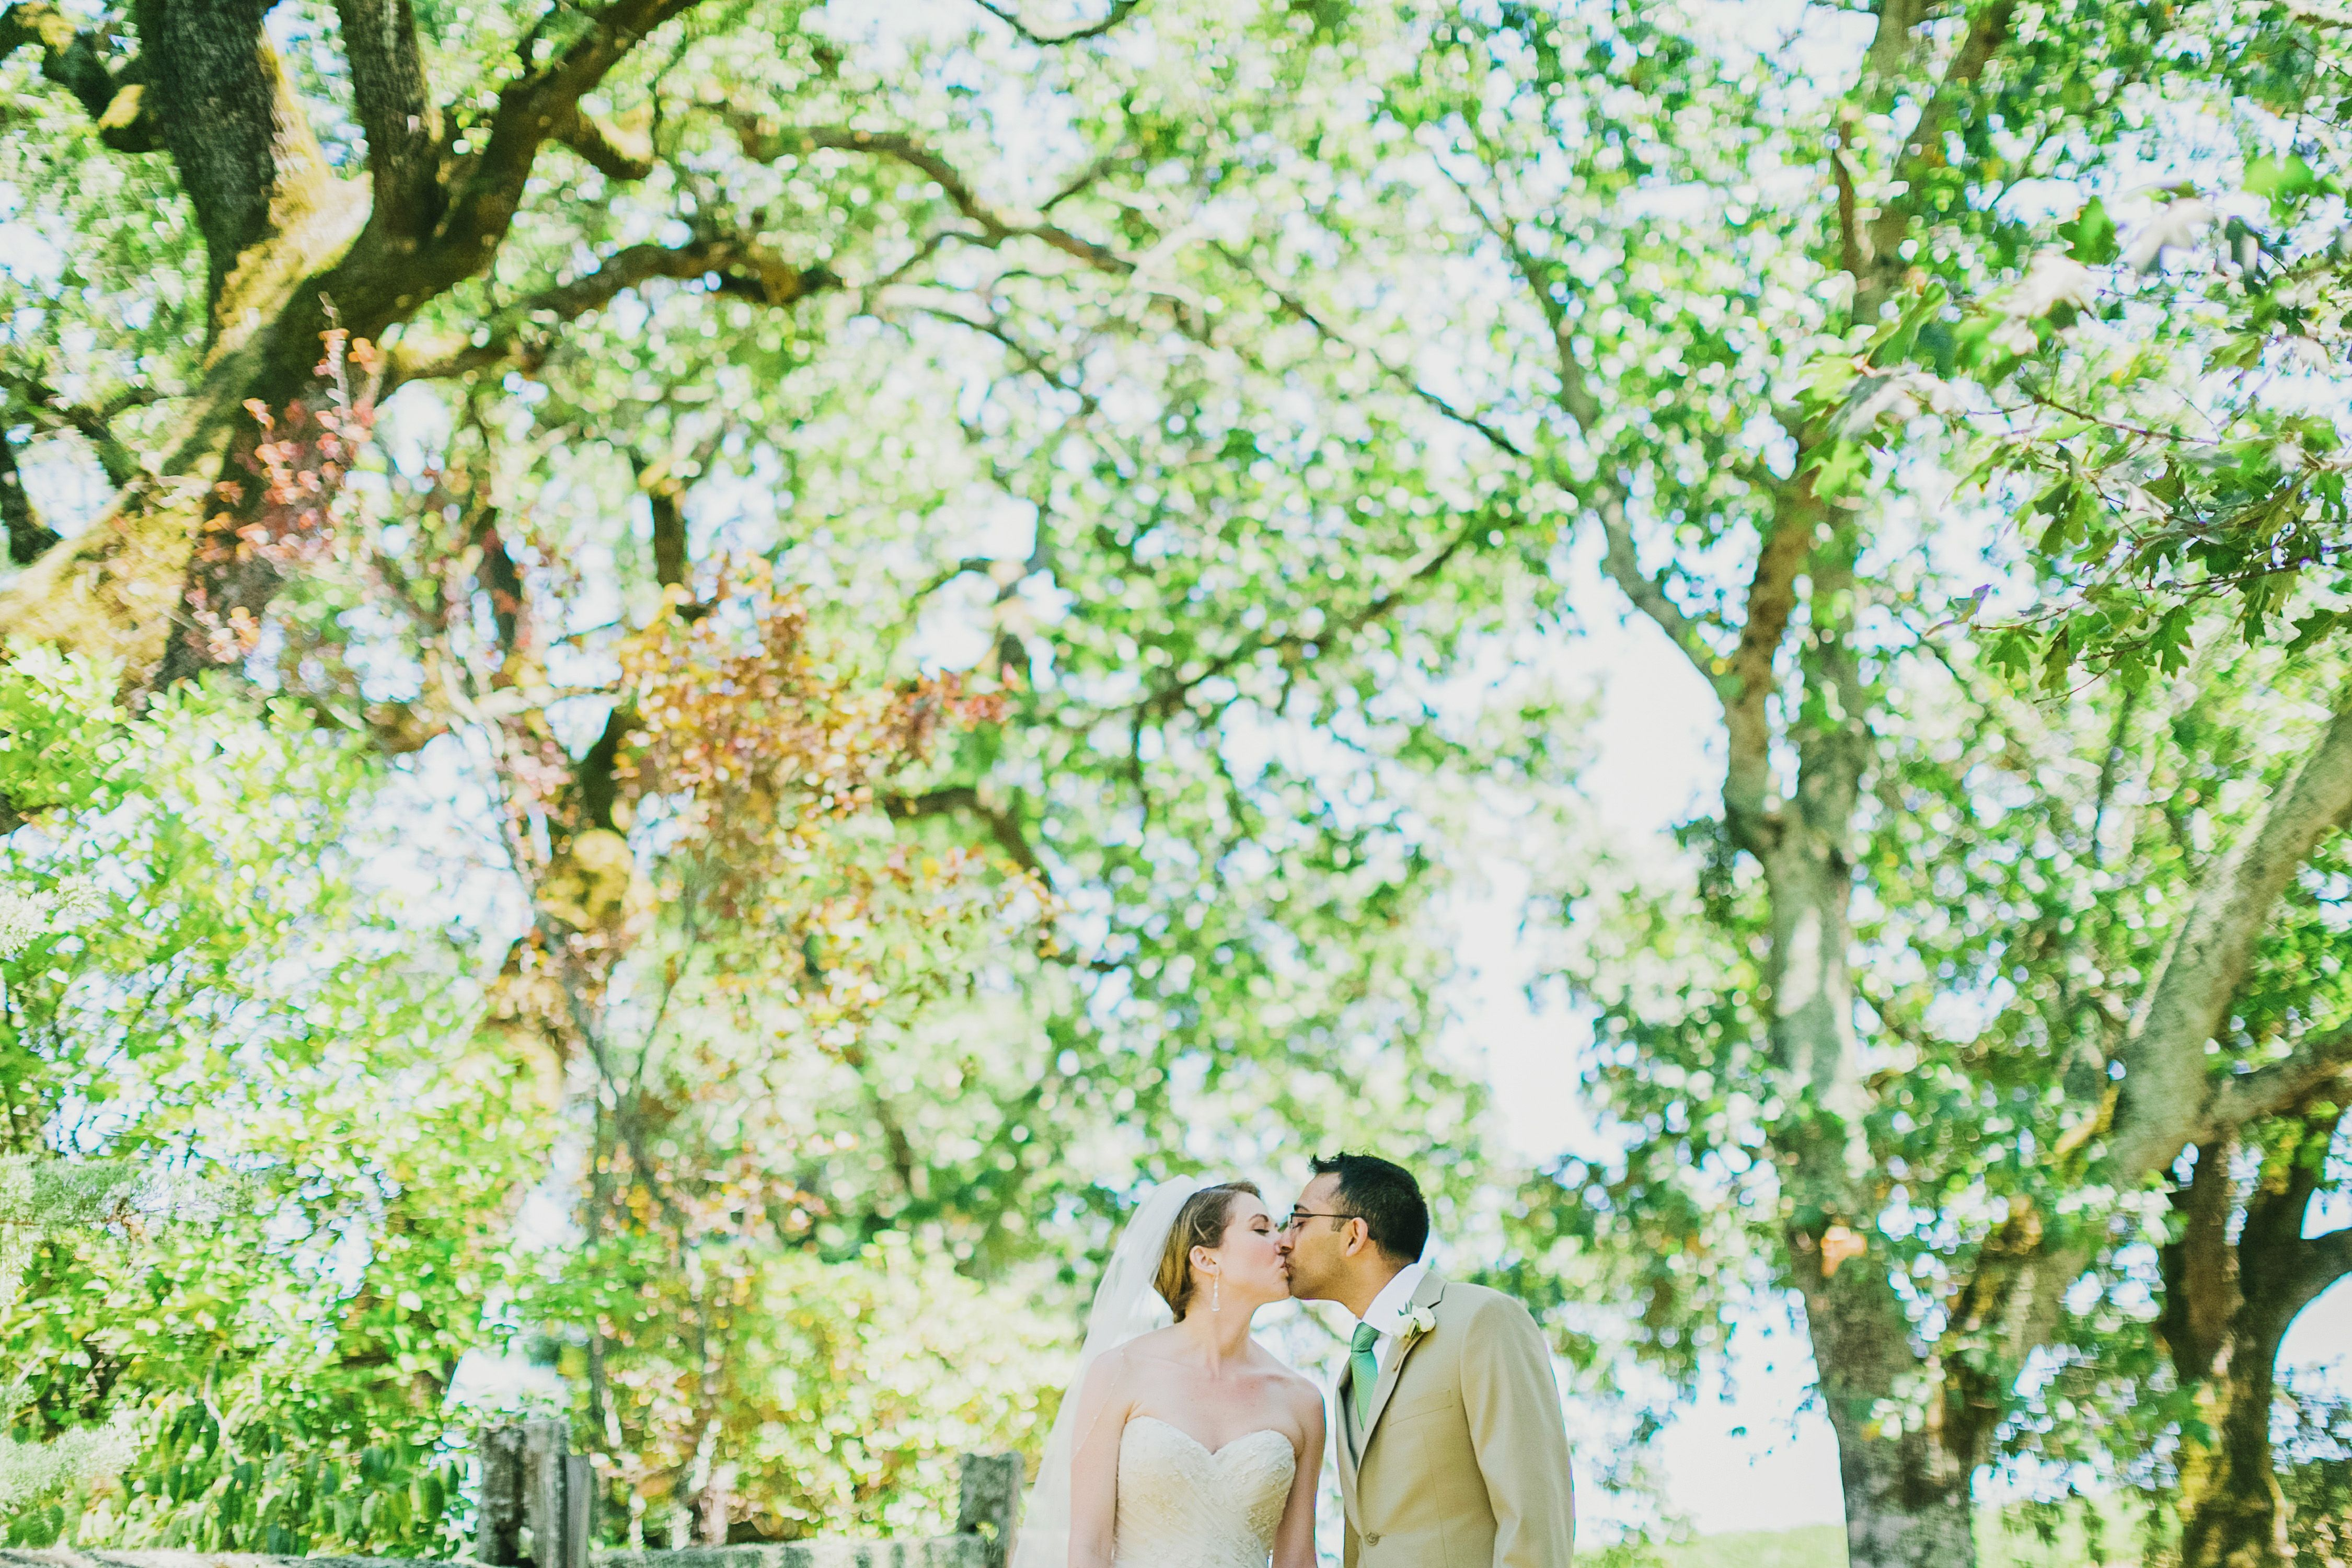 Emily and Vishal's dreamy event is the epitome of a California winery wedding.   #kundeestate #KundeEstateWedding  #bride #groom  #california #winery  #wedding #winerywedding